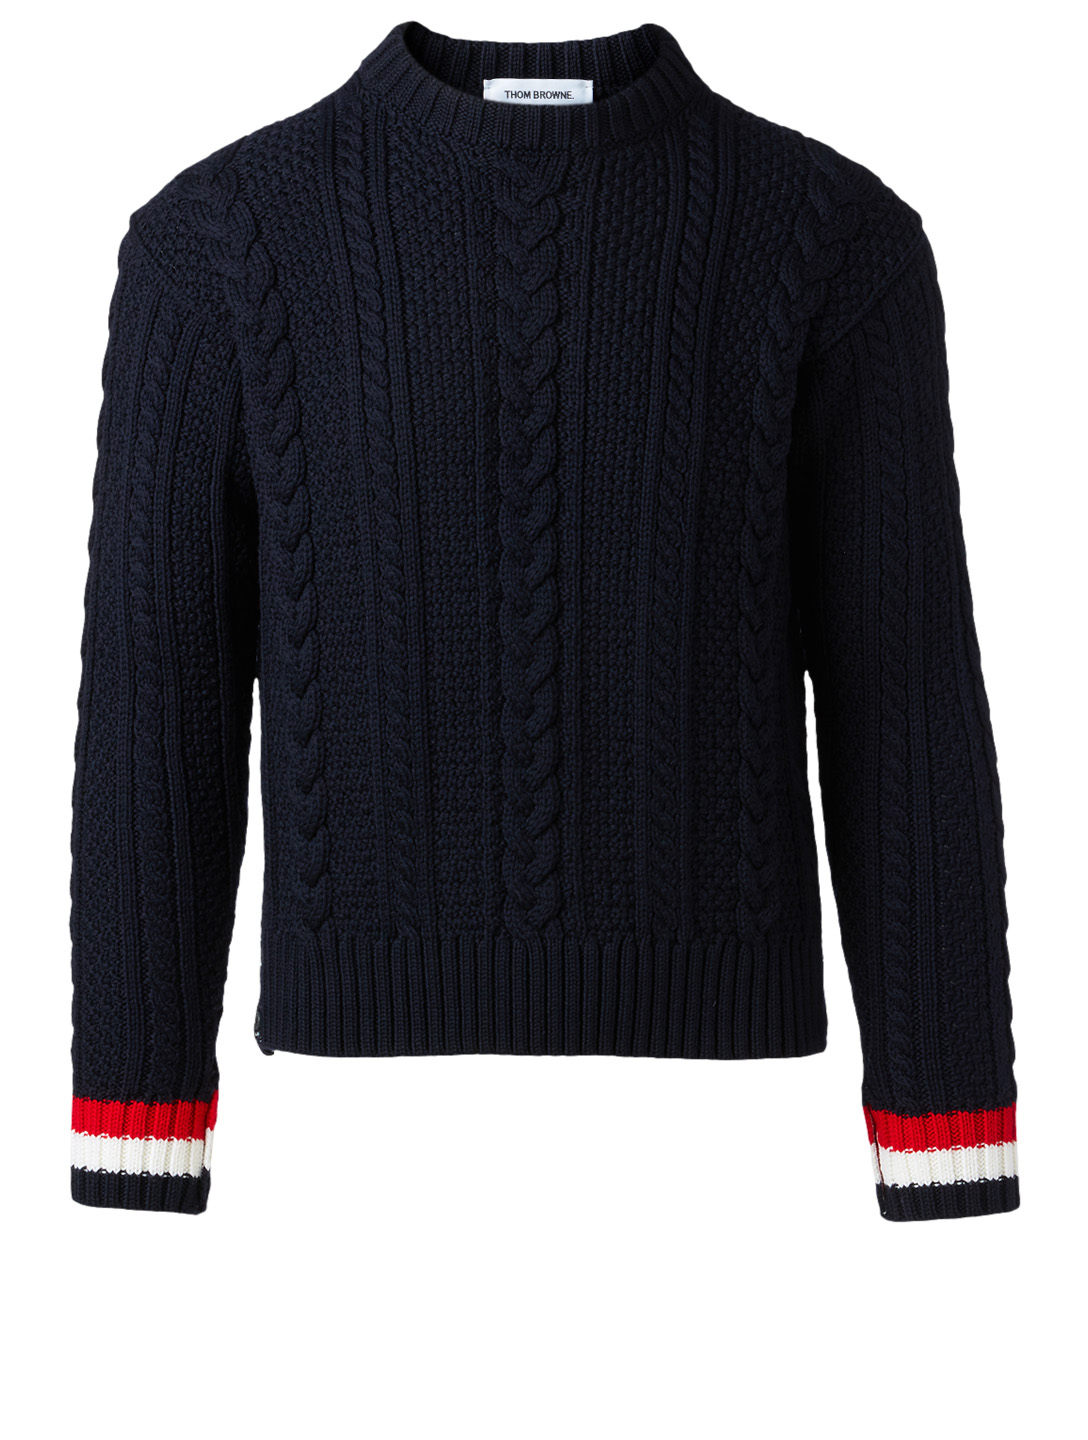 THOM BROWNE Wool Cable Knit Sweater Men's Blue